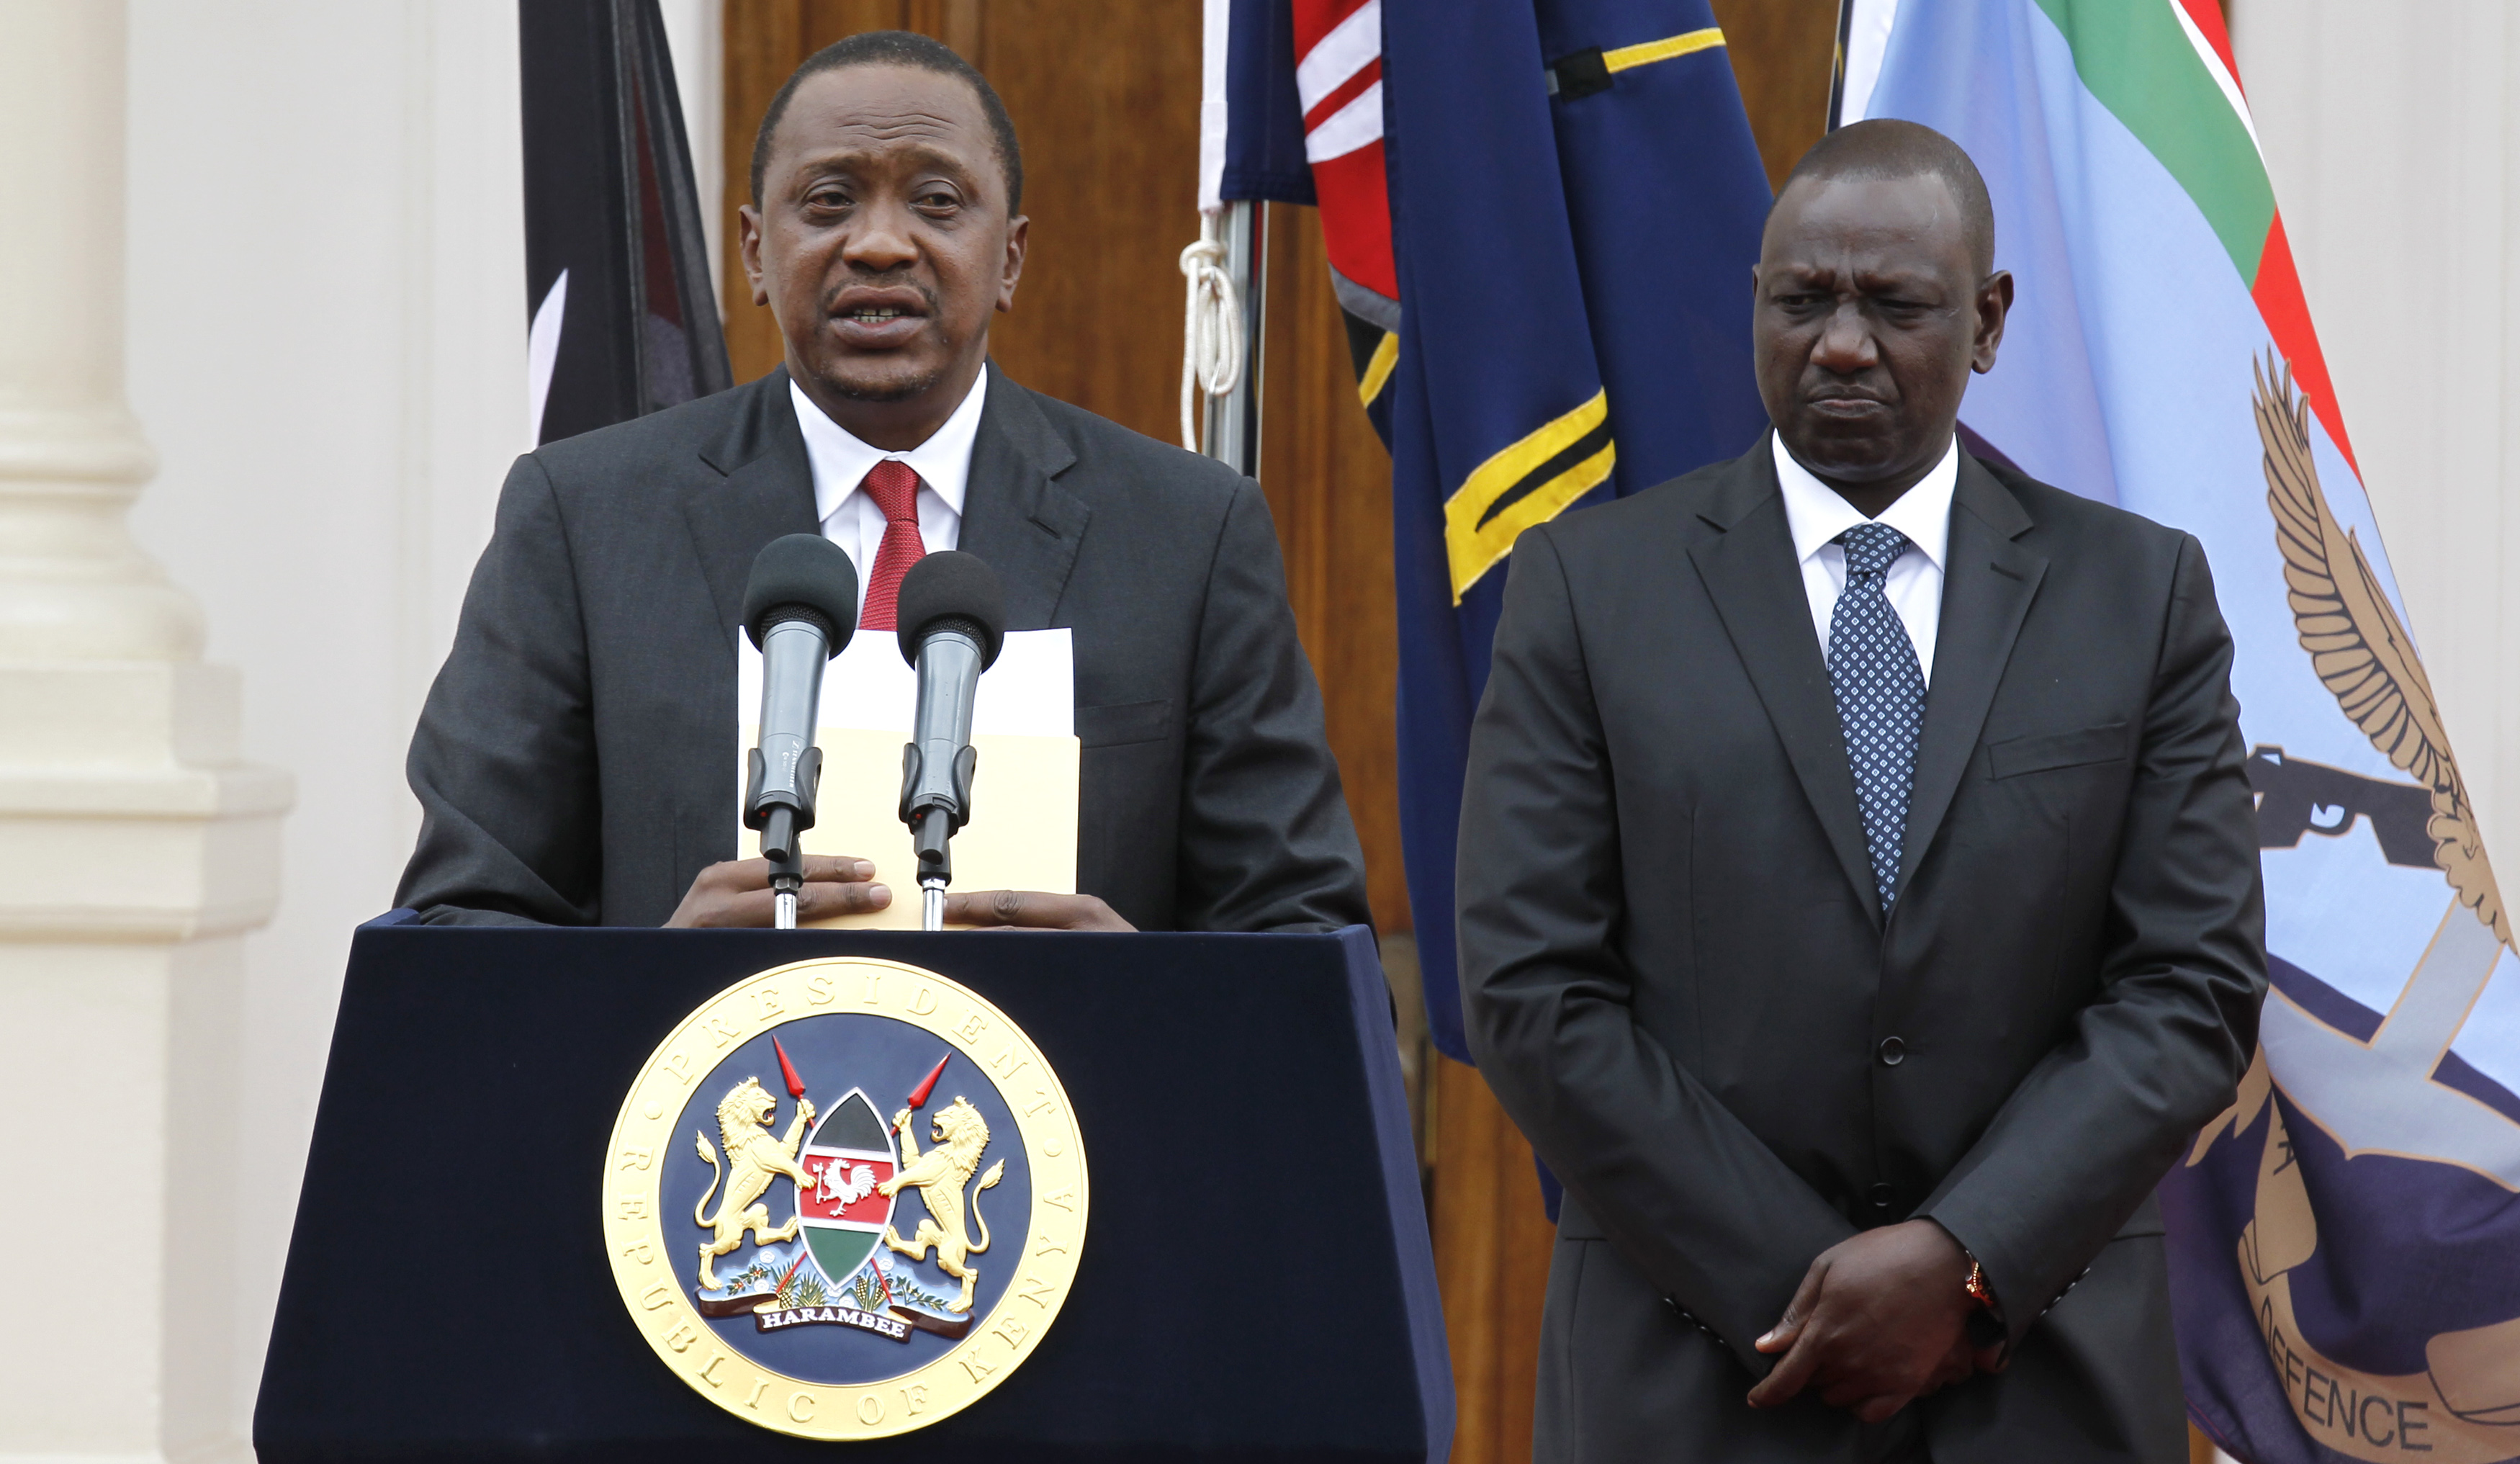 Kenyan Cabinet Secretaries Kenya Corruption Probe Government Ministers Step Down At